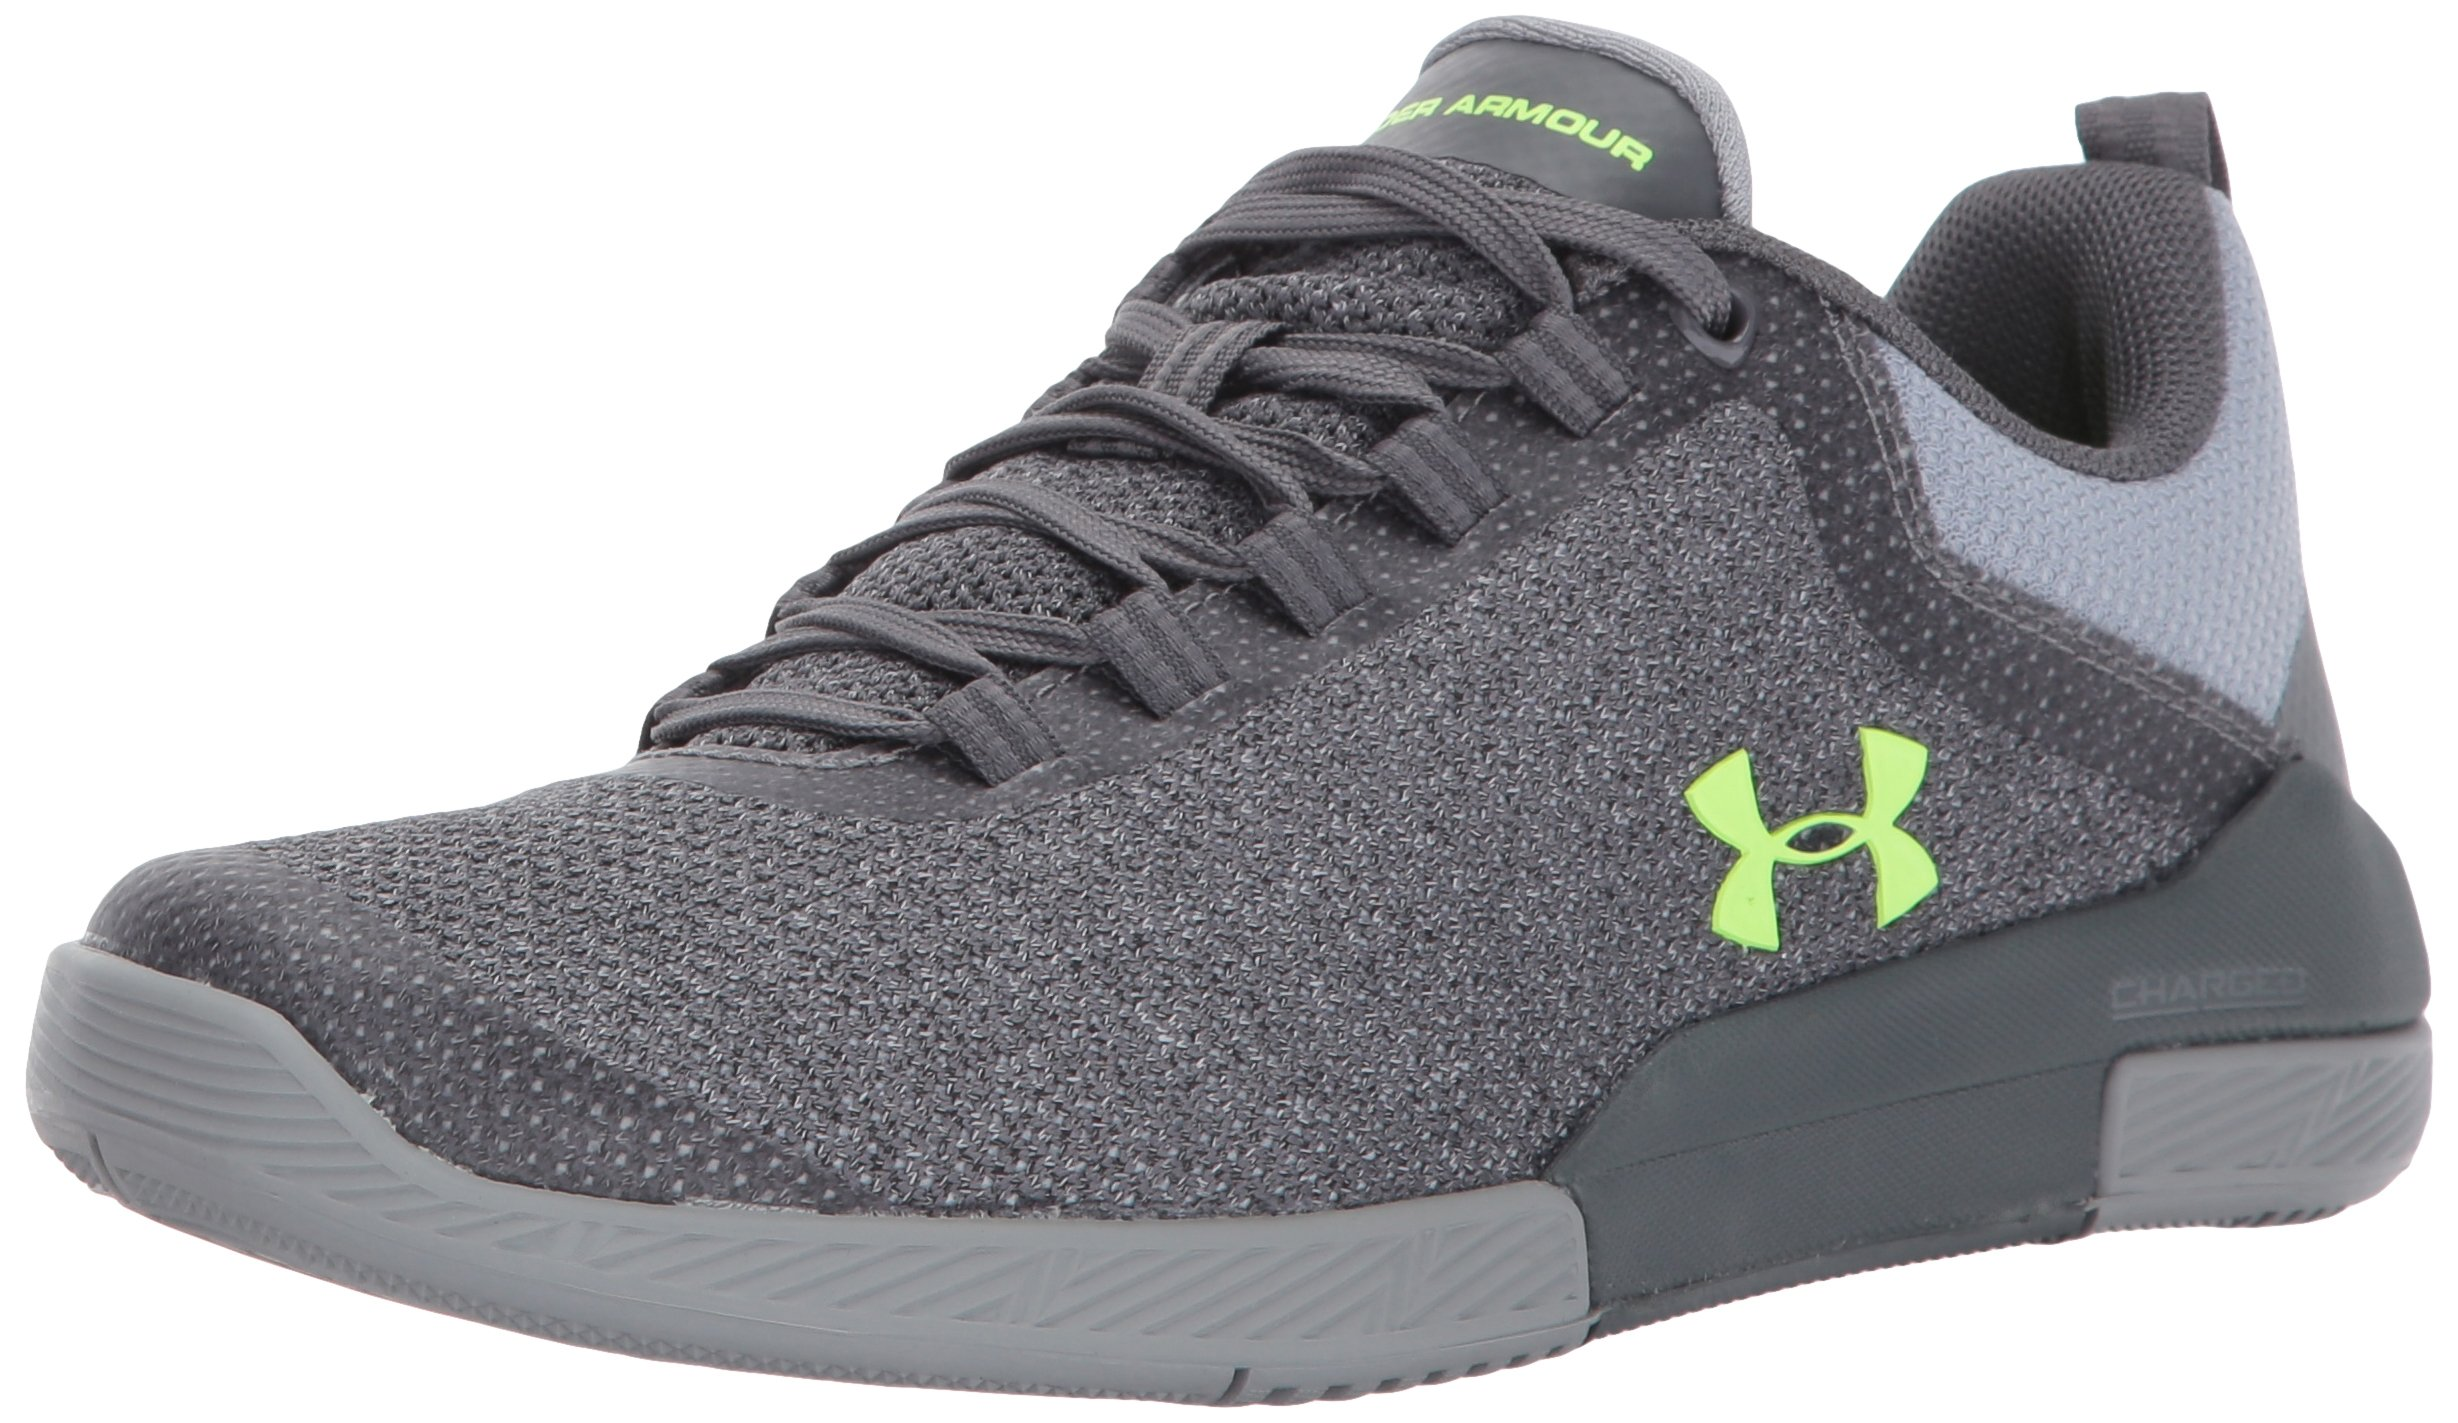 Under Armour Women's Charged Legend Hypersplice, Rhino Gray/Steel/Quirky Lime, 11 B(M) US